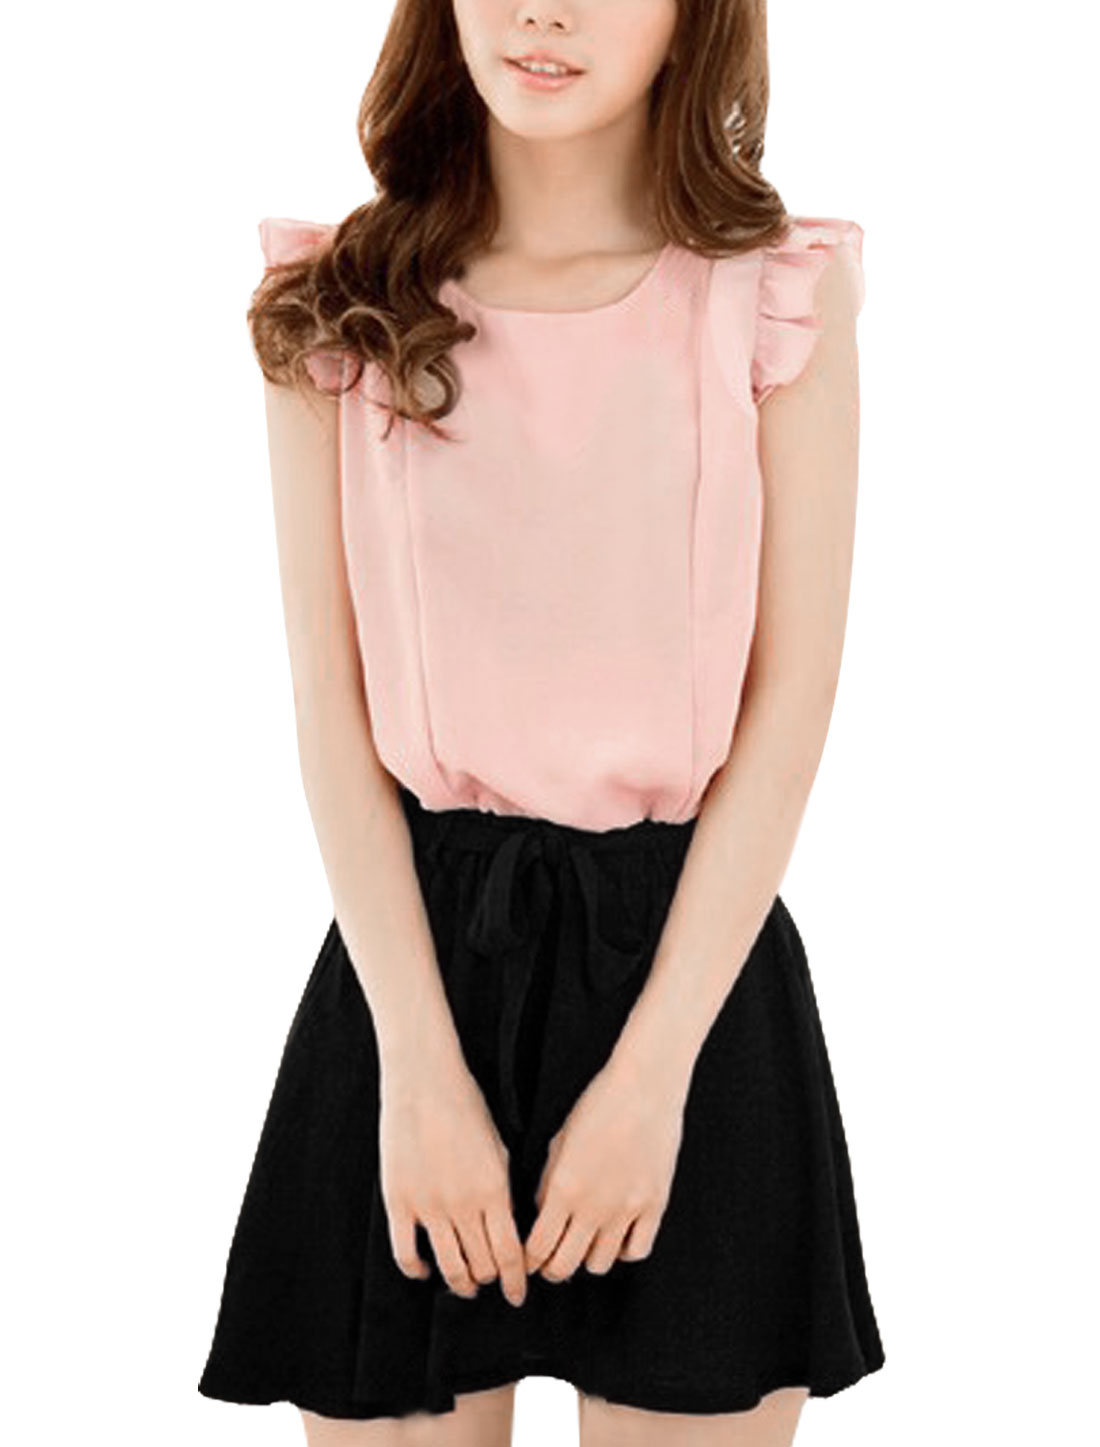 Ladies Round Neck Sleeveless Elastic Waist Flouncing Decor Dress Pale Pink Black S